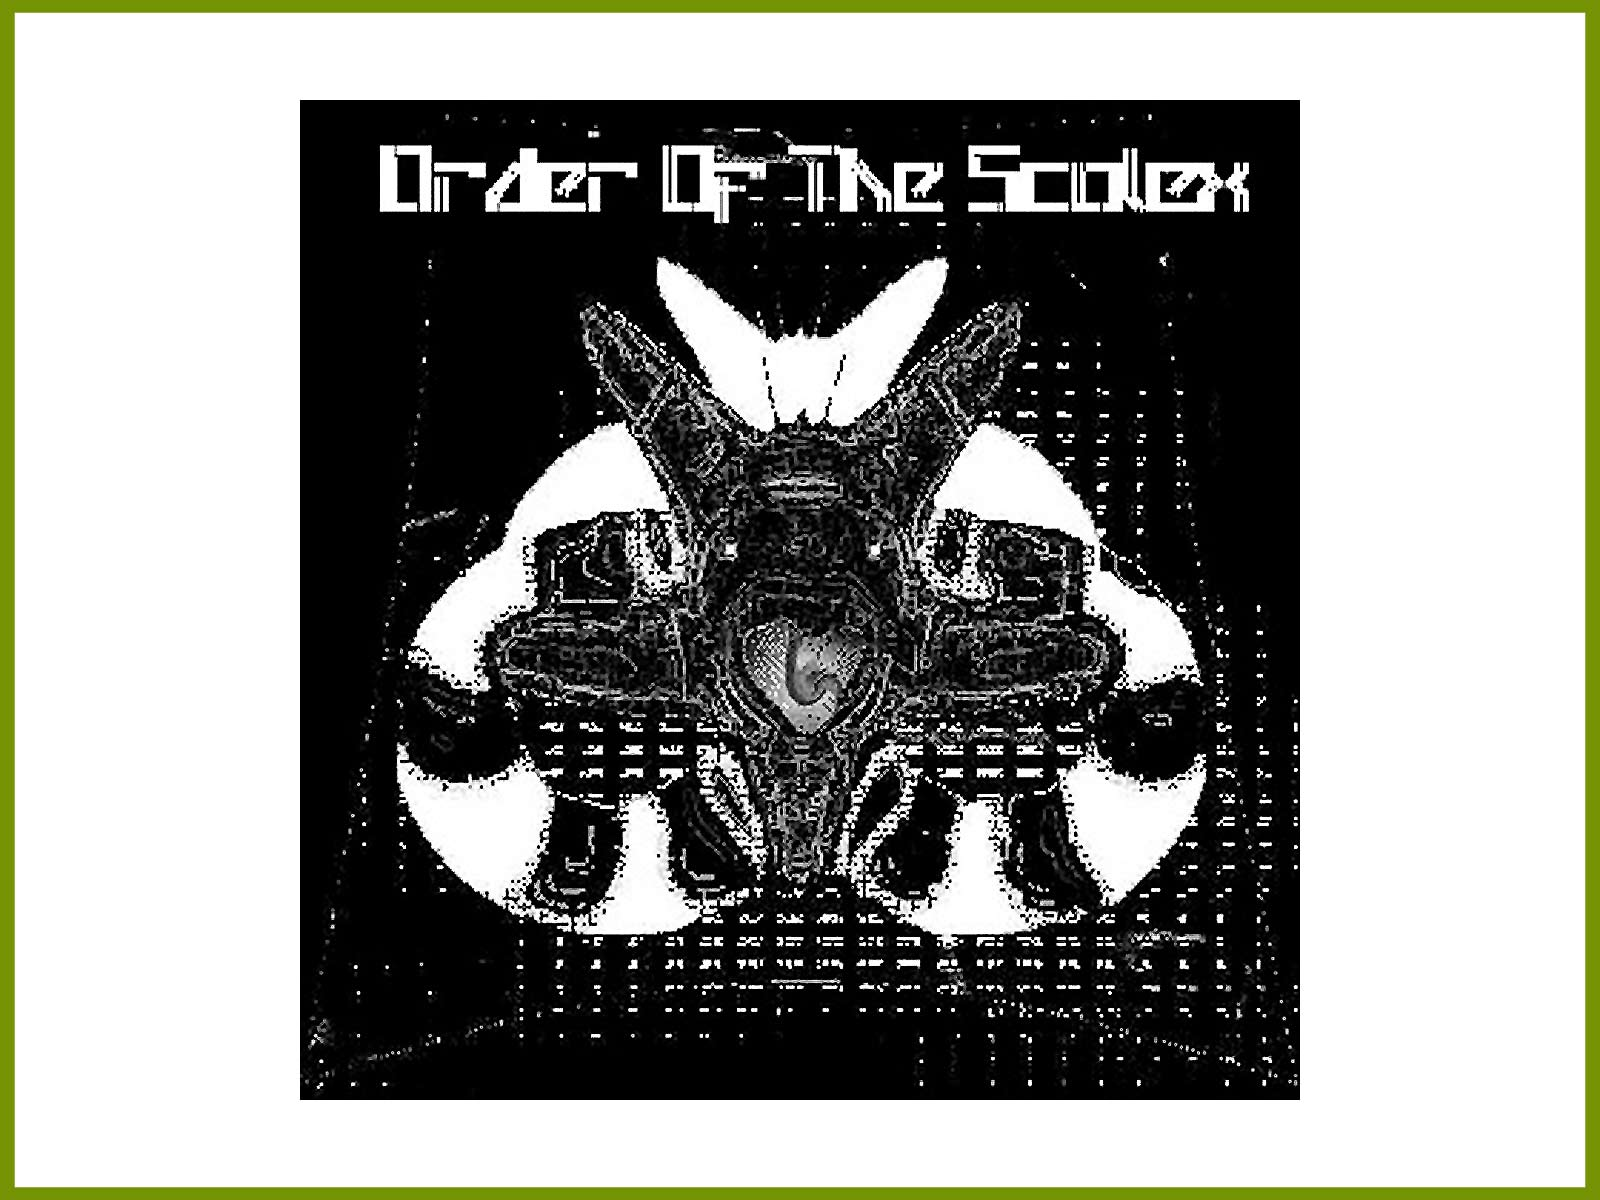 Available now: At Work on 'Order Of The Scolex' compilation 2 x cassette